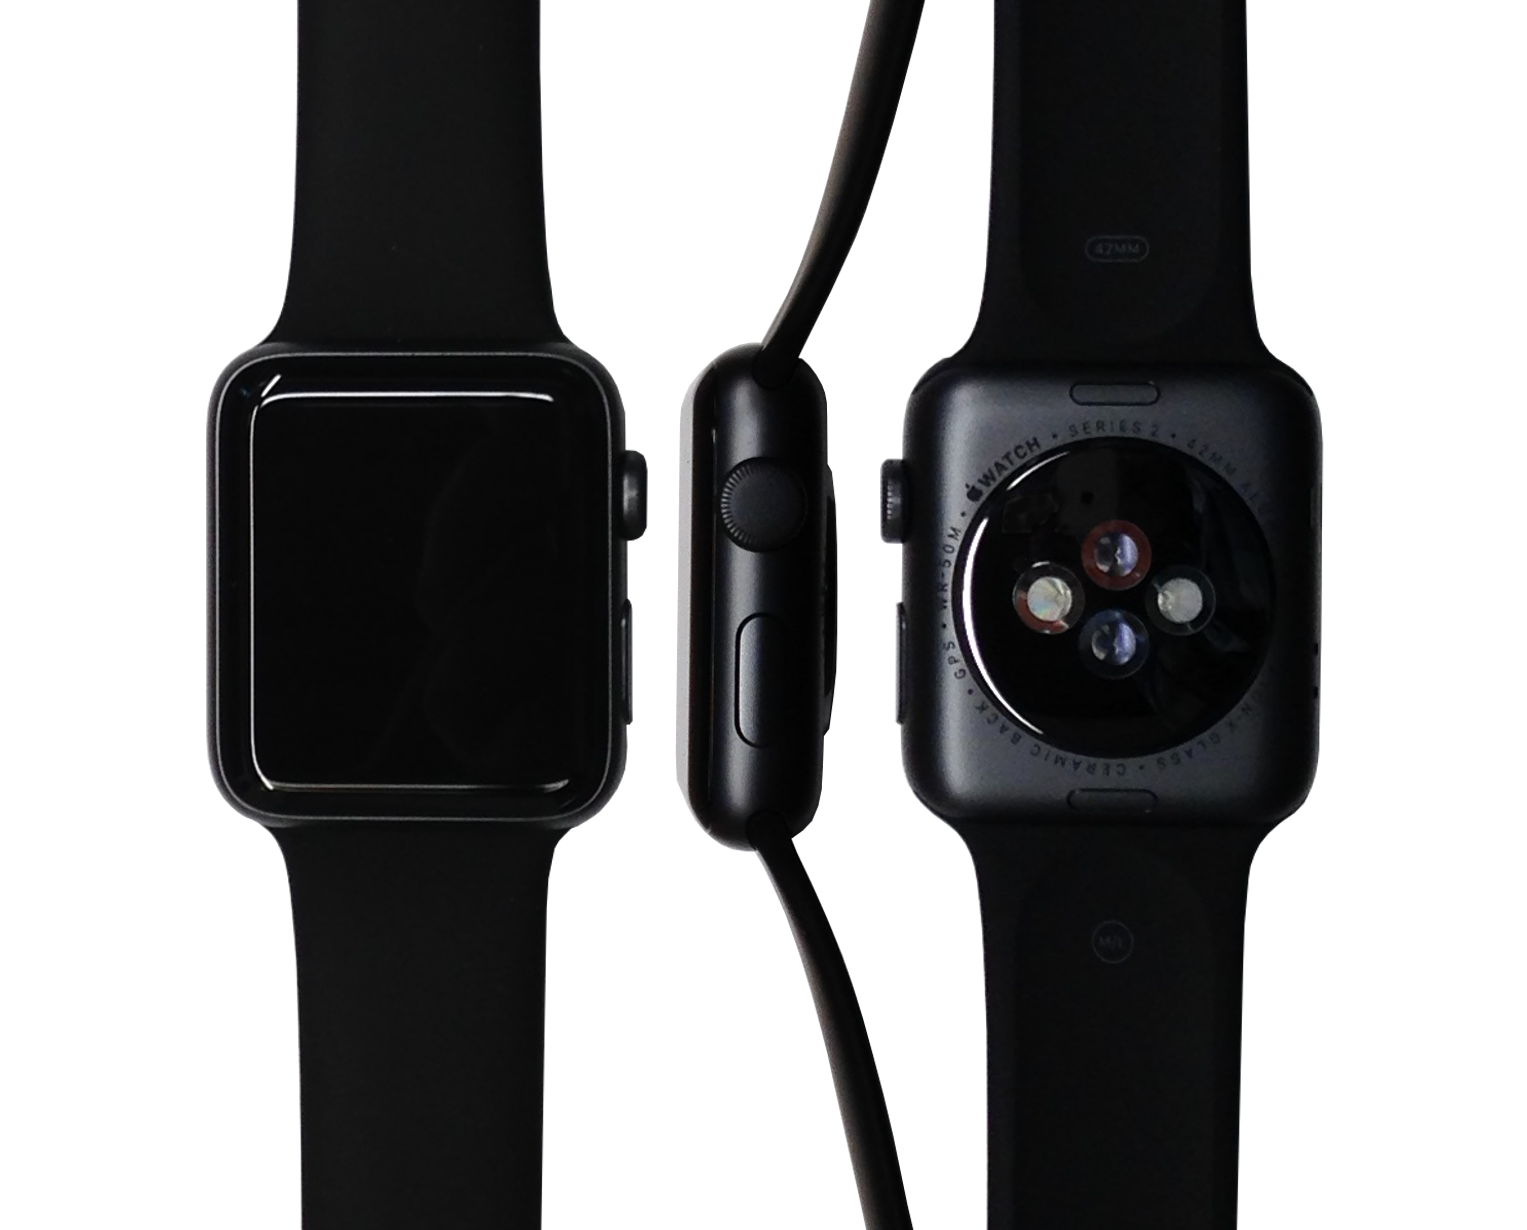 Ремонт Apple Watch s2 в Киеве